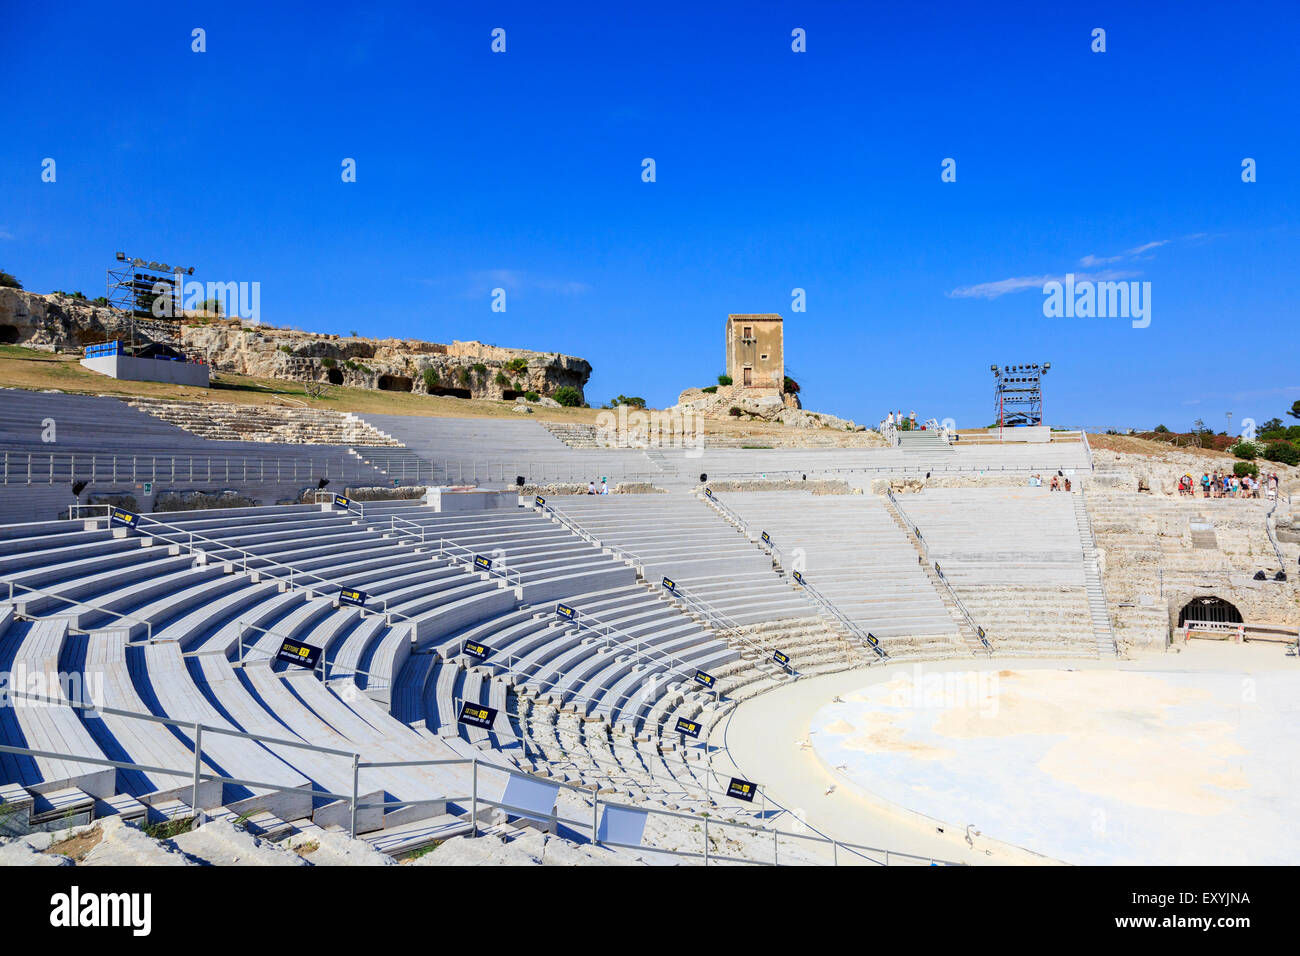 6th Century BC Greek amphitheatre in Latomia del Paradiso, Neapolis District, Syracuse, Sicily, Italy. - Stock Image